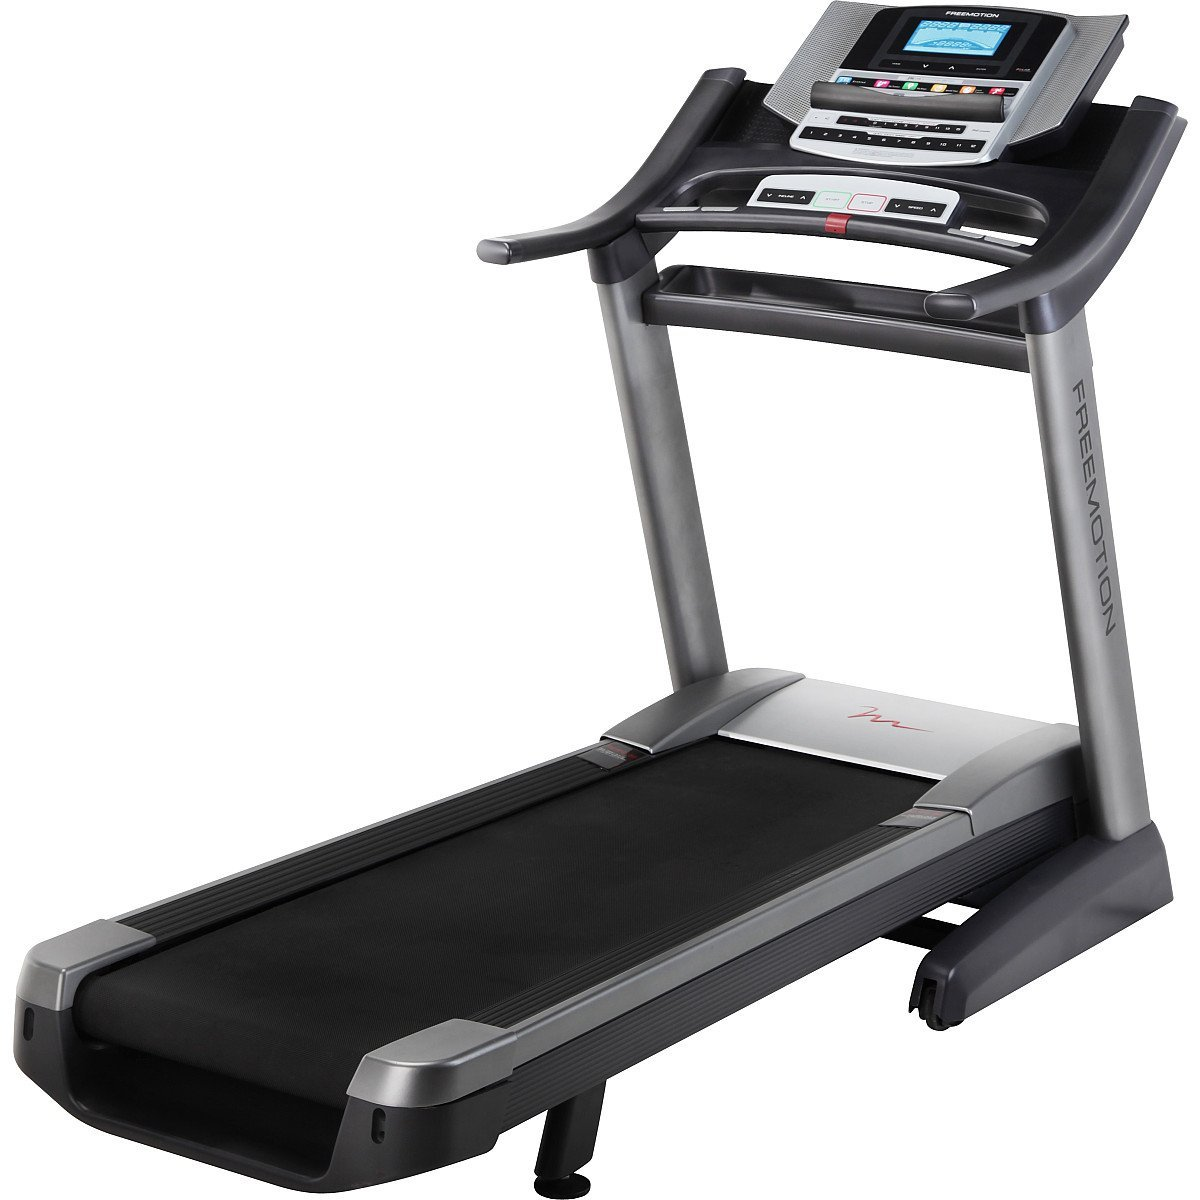 Freemotion Incline Trainer Comparison Review: Want A Freemotion Treadmill? We Compare FreeMotion 750